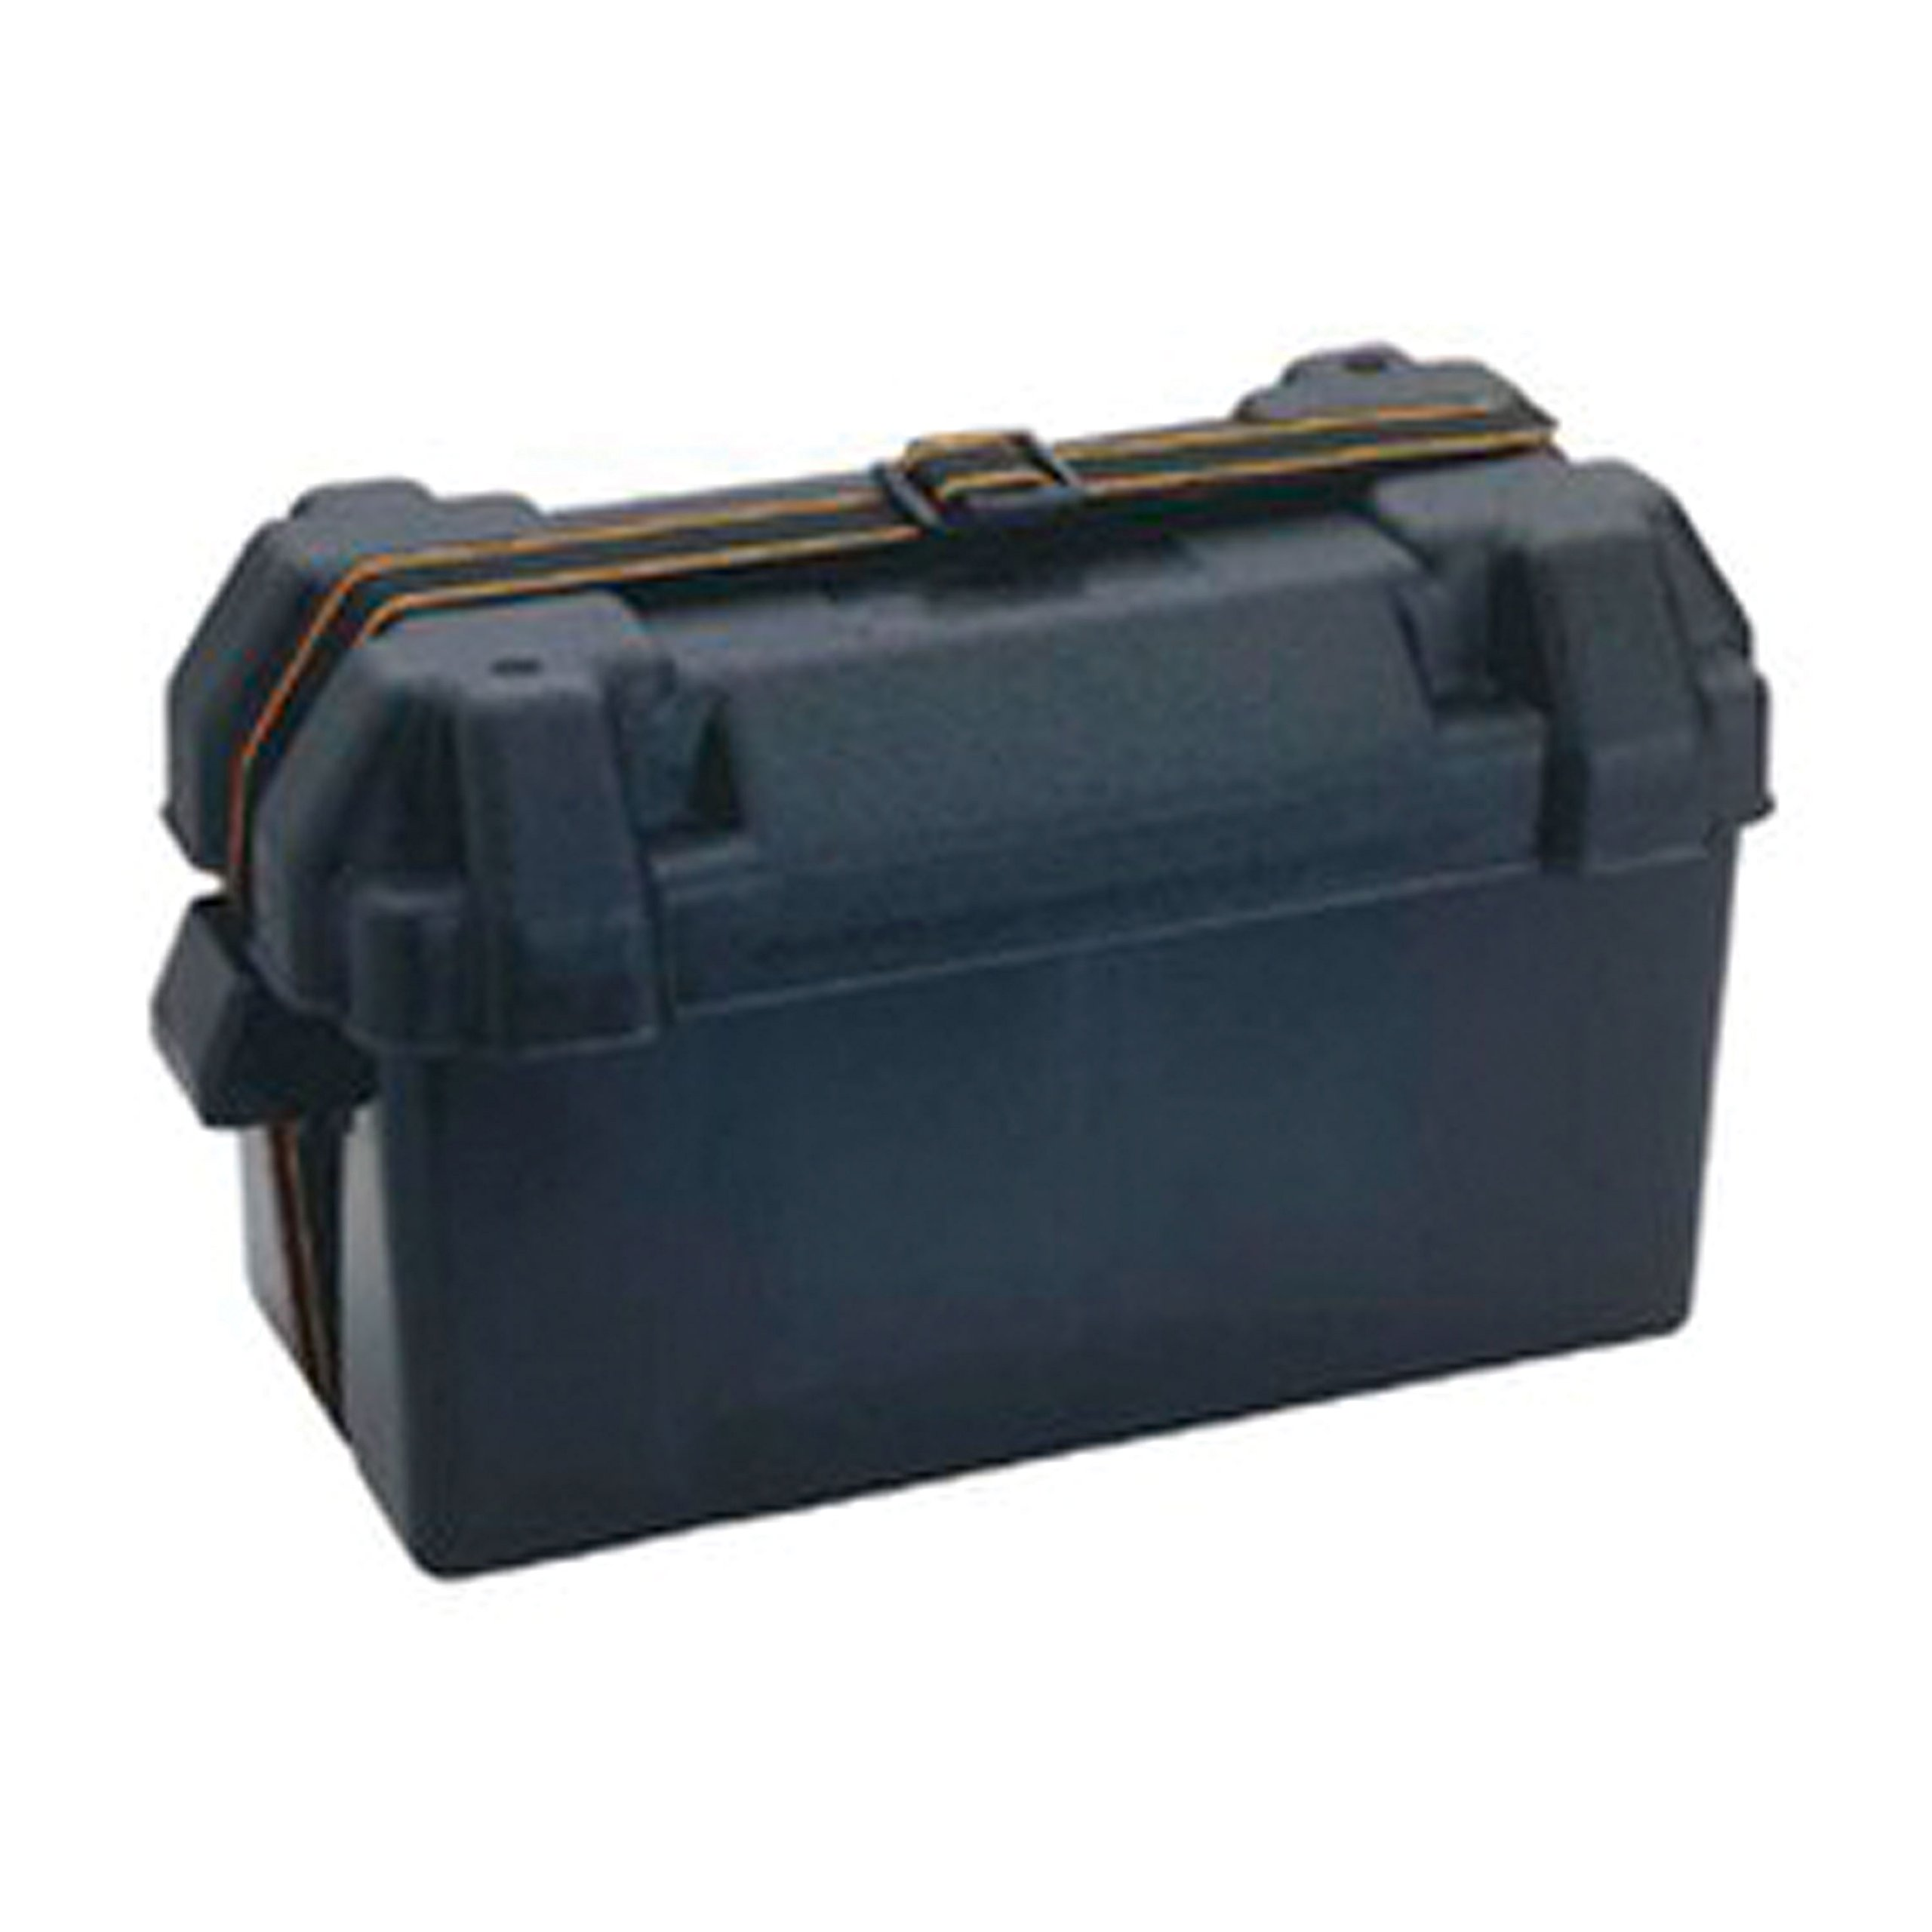 Attwood 9084-1 Large Battery Box - 29/31 Series, Vented , Black by attwood